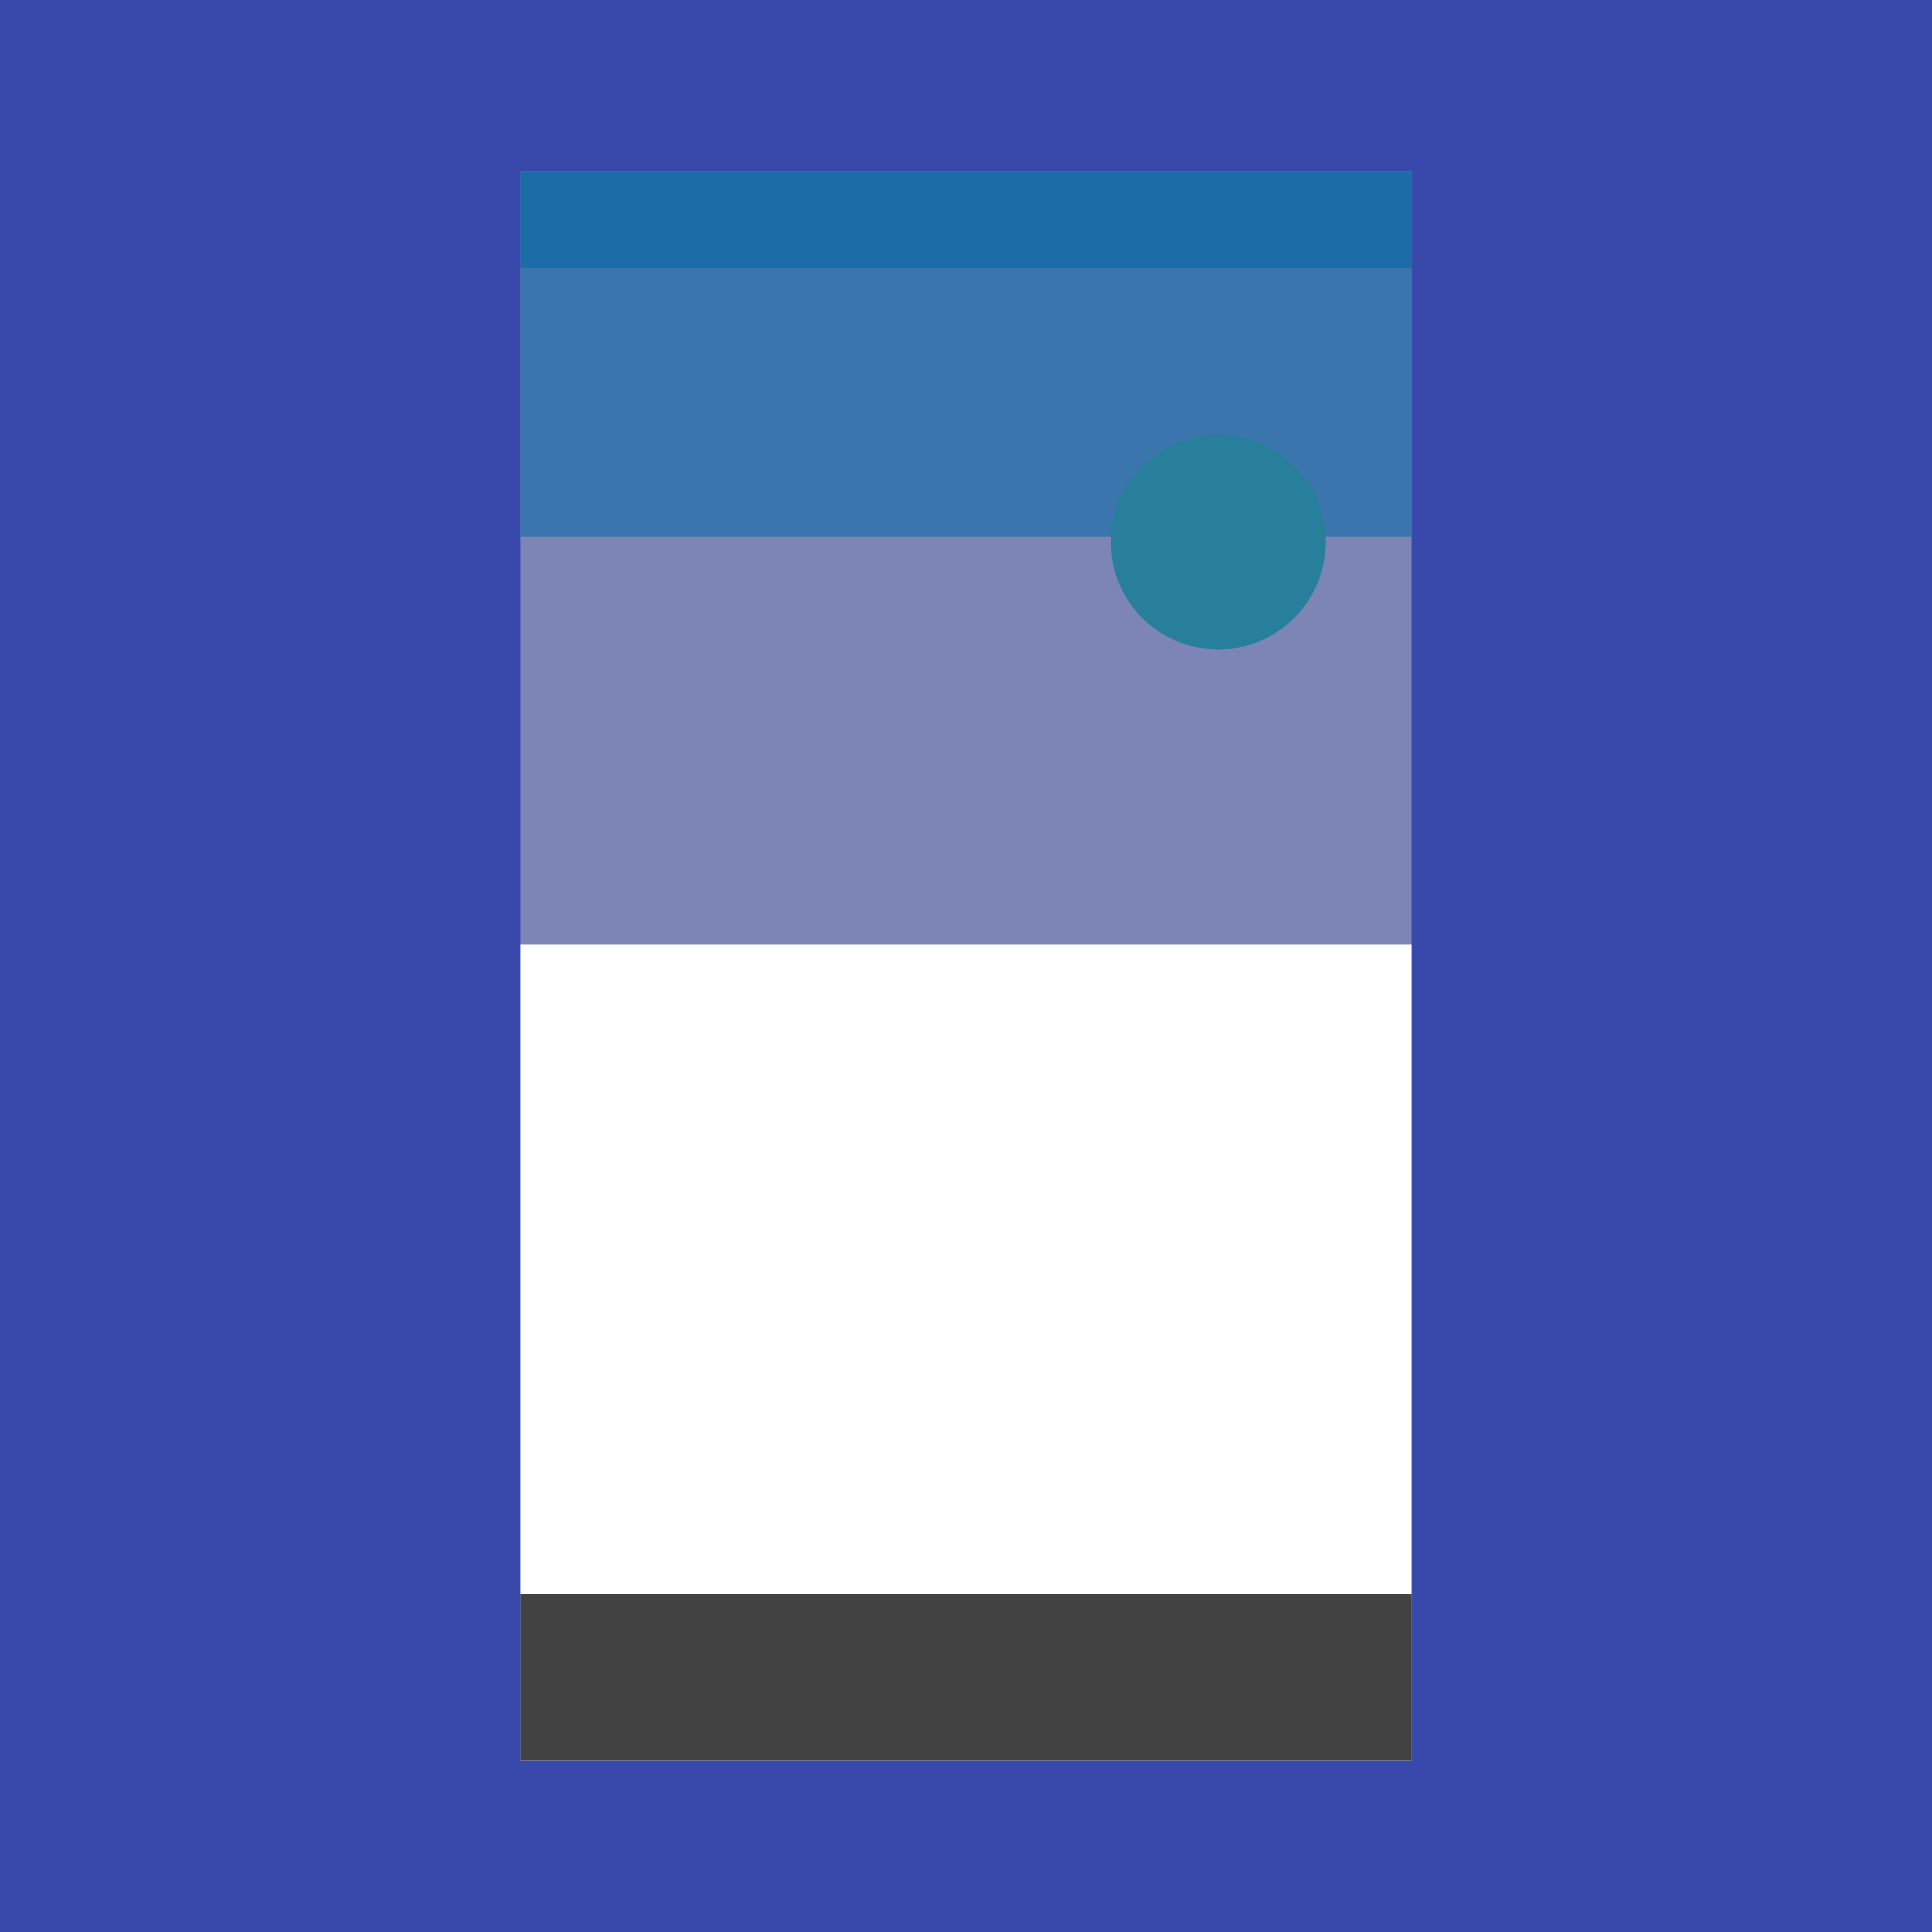 A simple library that creates BottomSheets according to the Material Design Specs